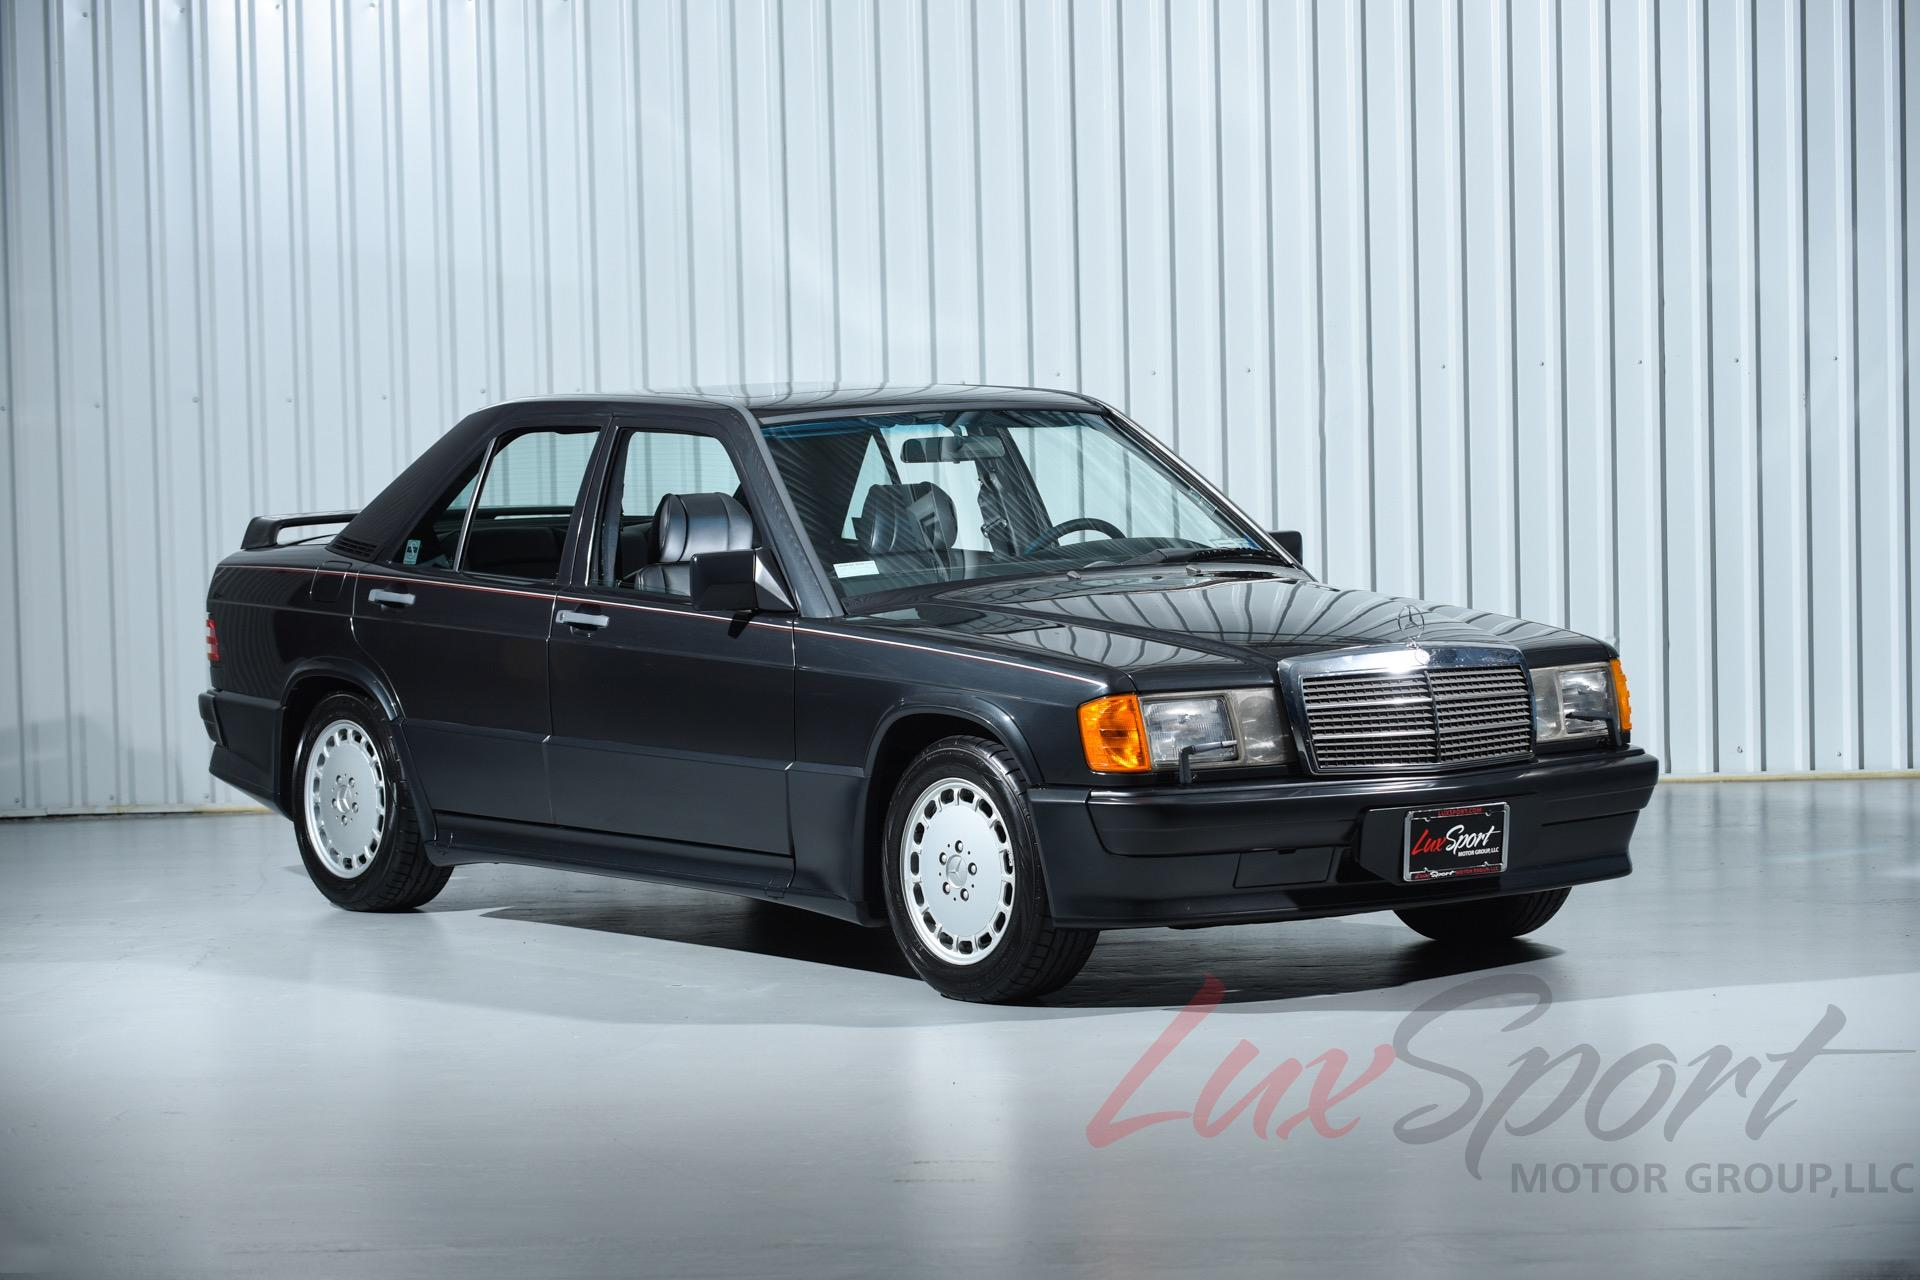 1987 mercedes benz 190 e 2 3 16v stock 1987158 for sale near new hyde park ny ny mercedes. Black Bedroom Furniture Sets. Home Design Ideas